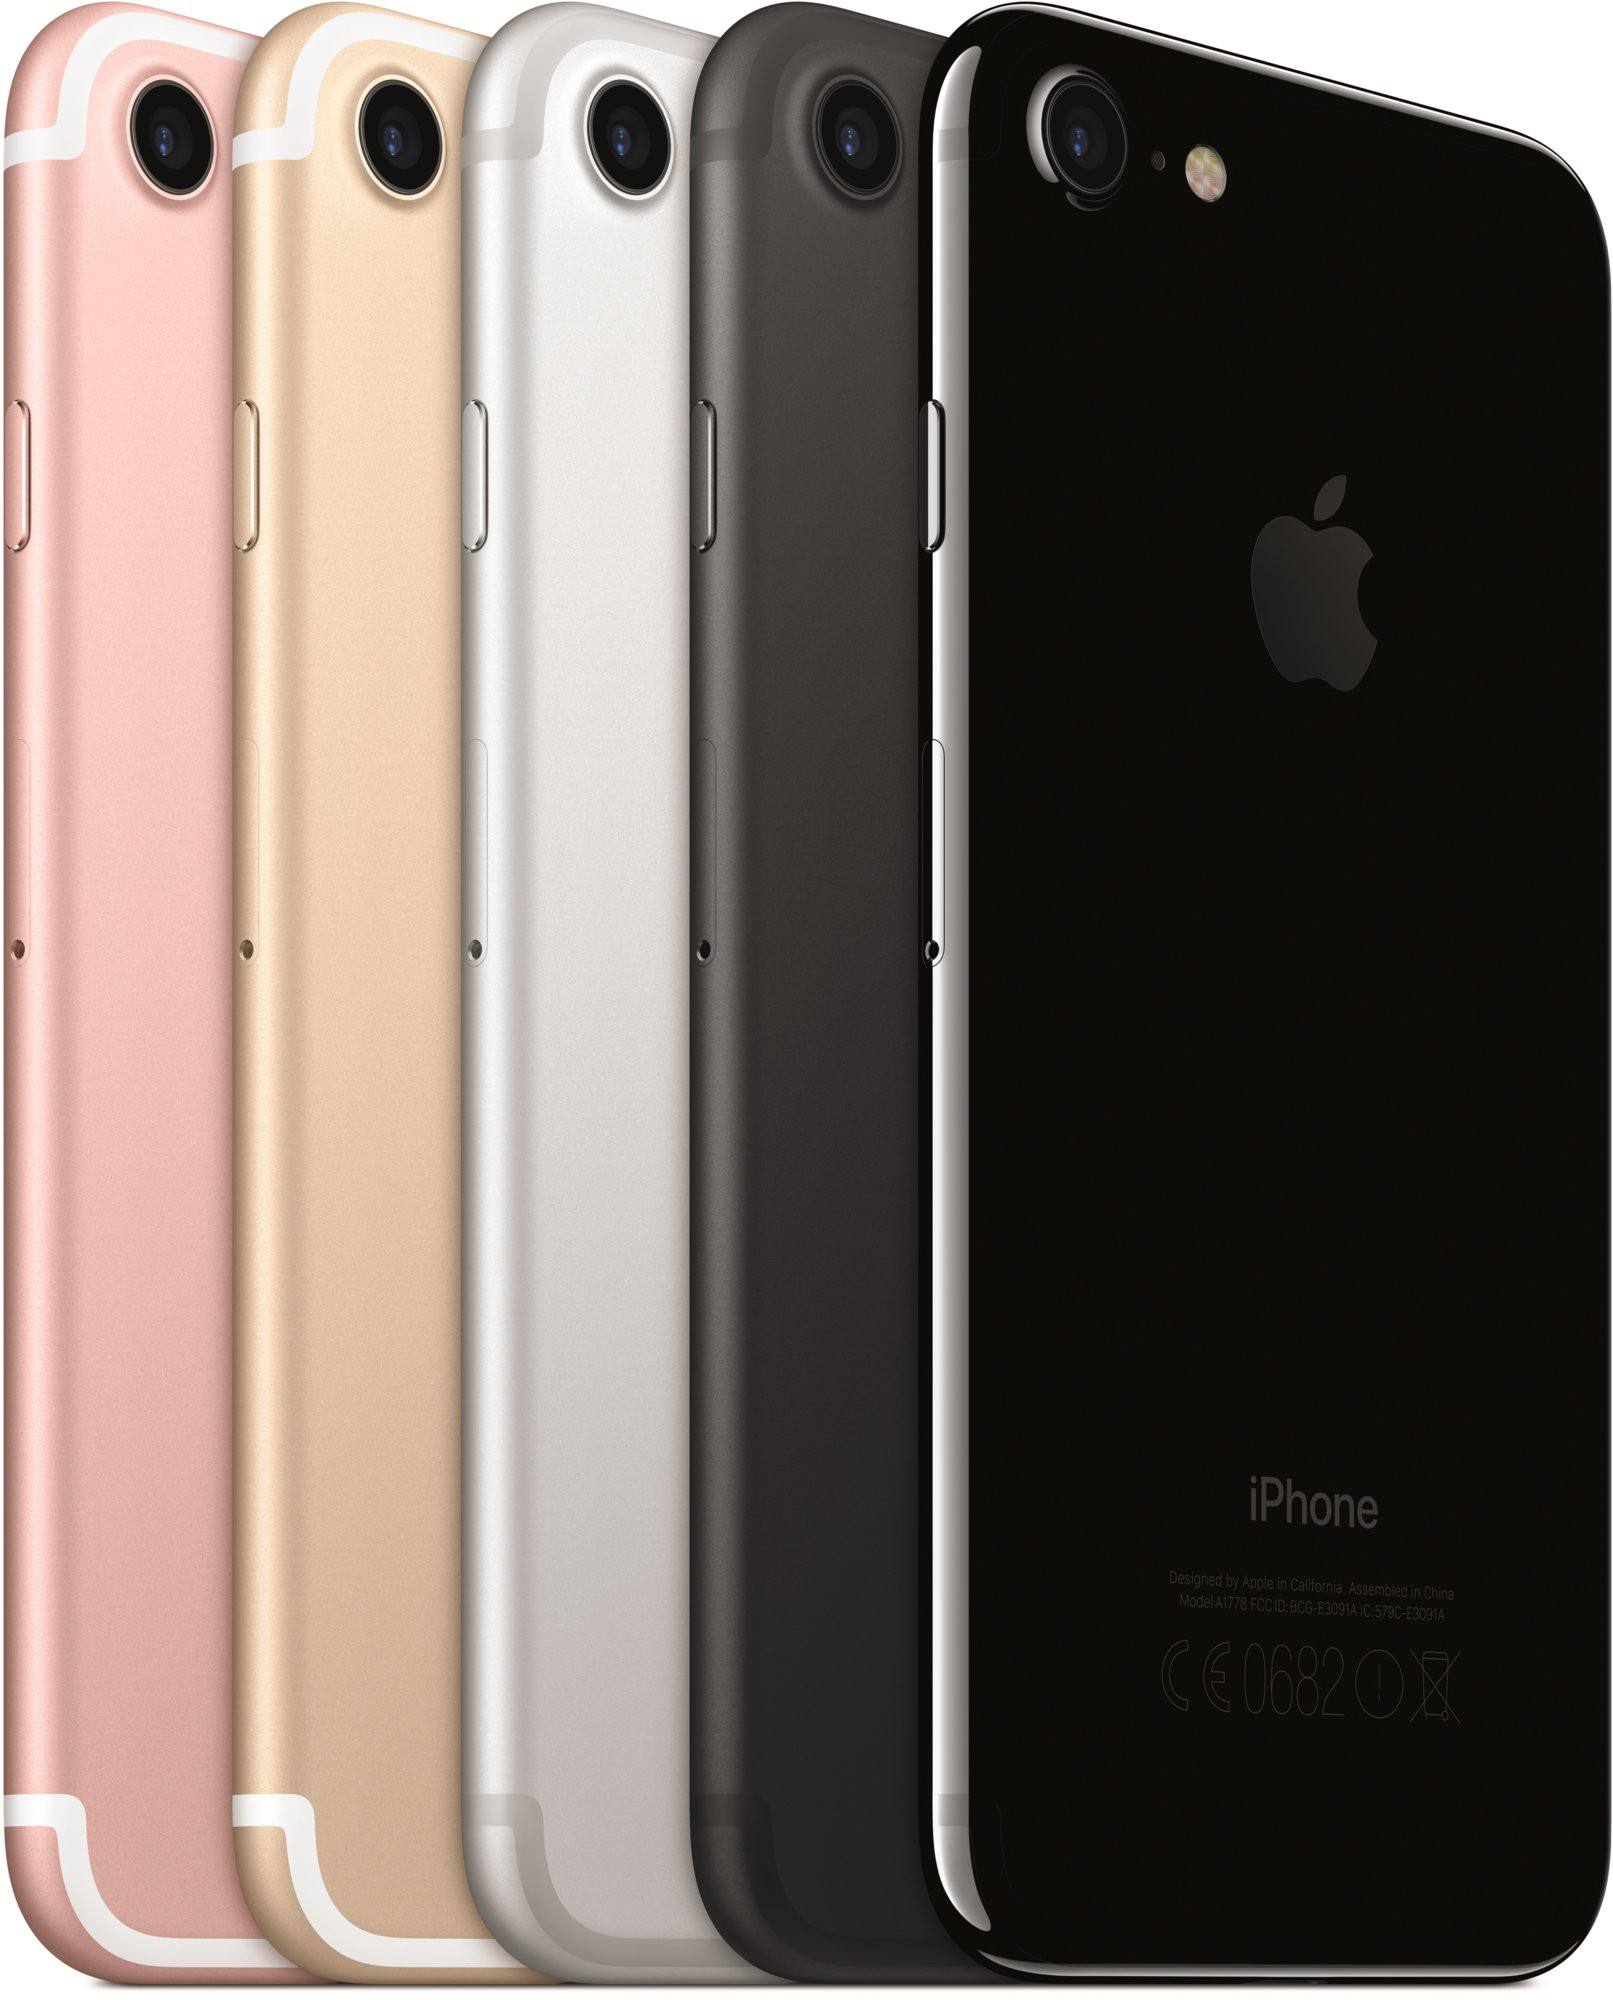 Apple Iphone 7 32 GB alle Farben